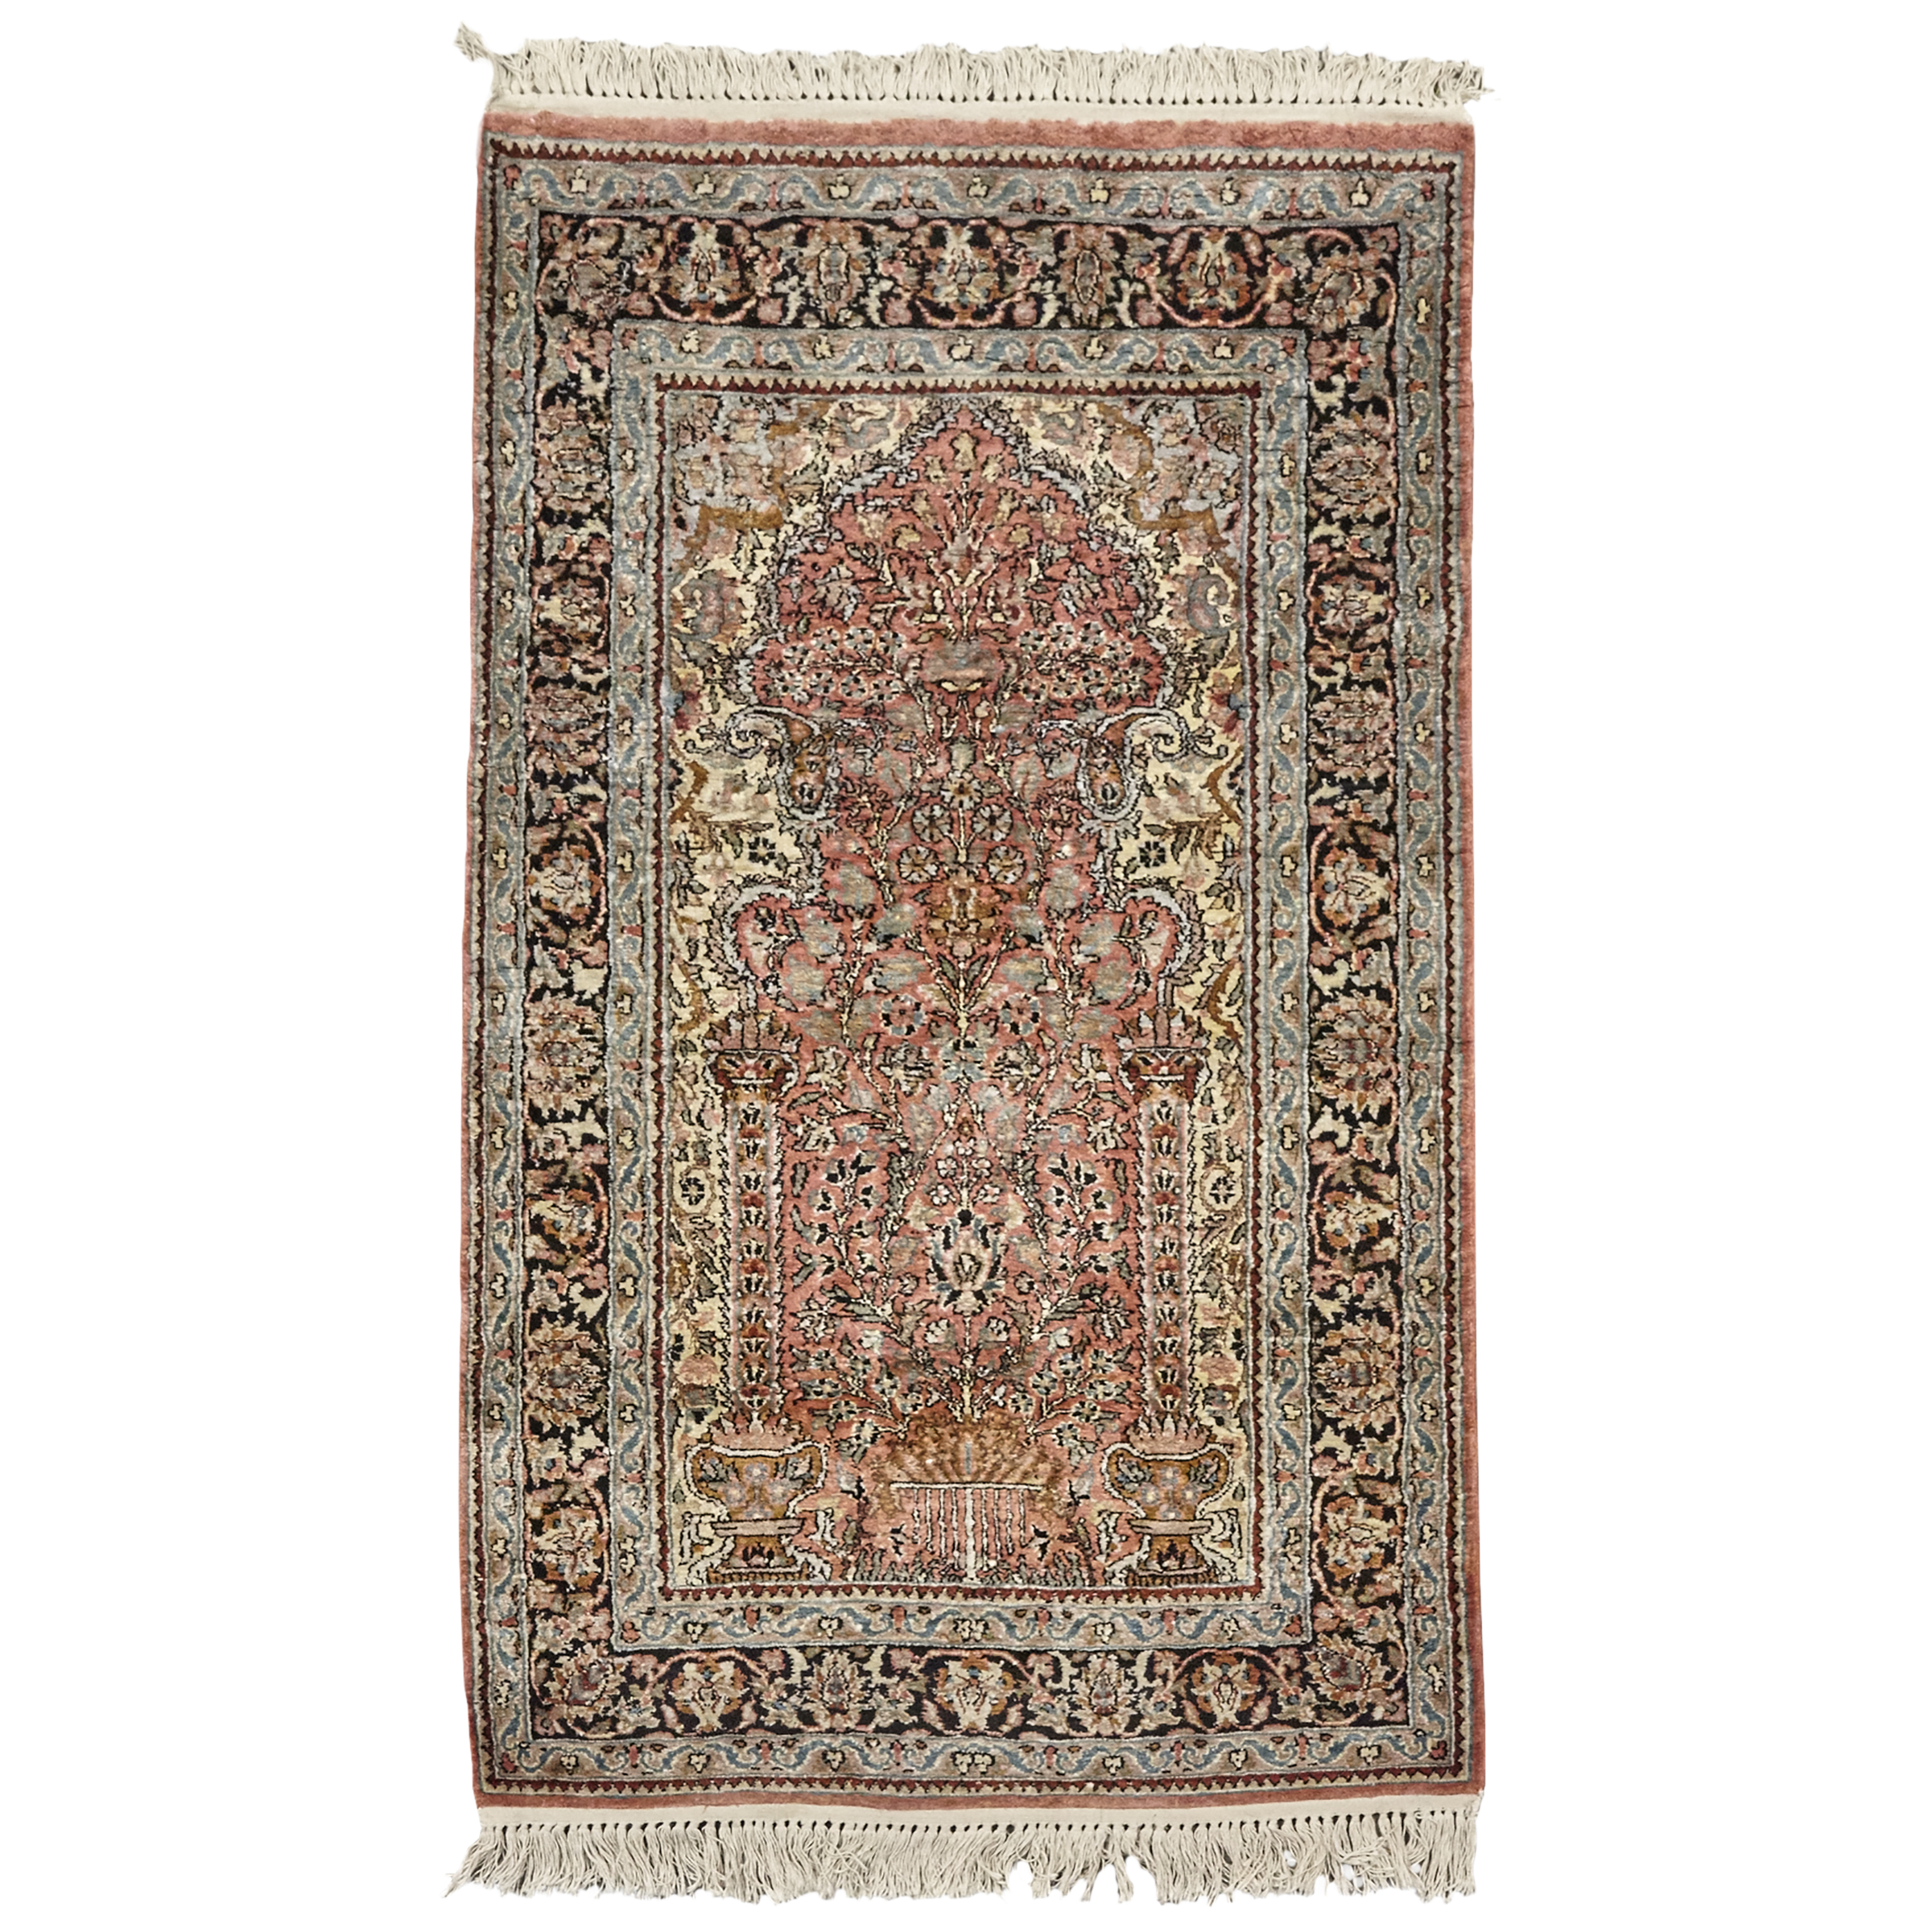 Indo Qum Silk Prayer Rug, late 20th century